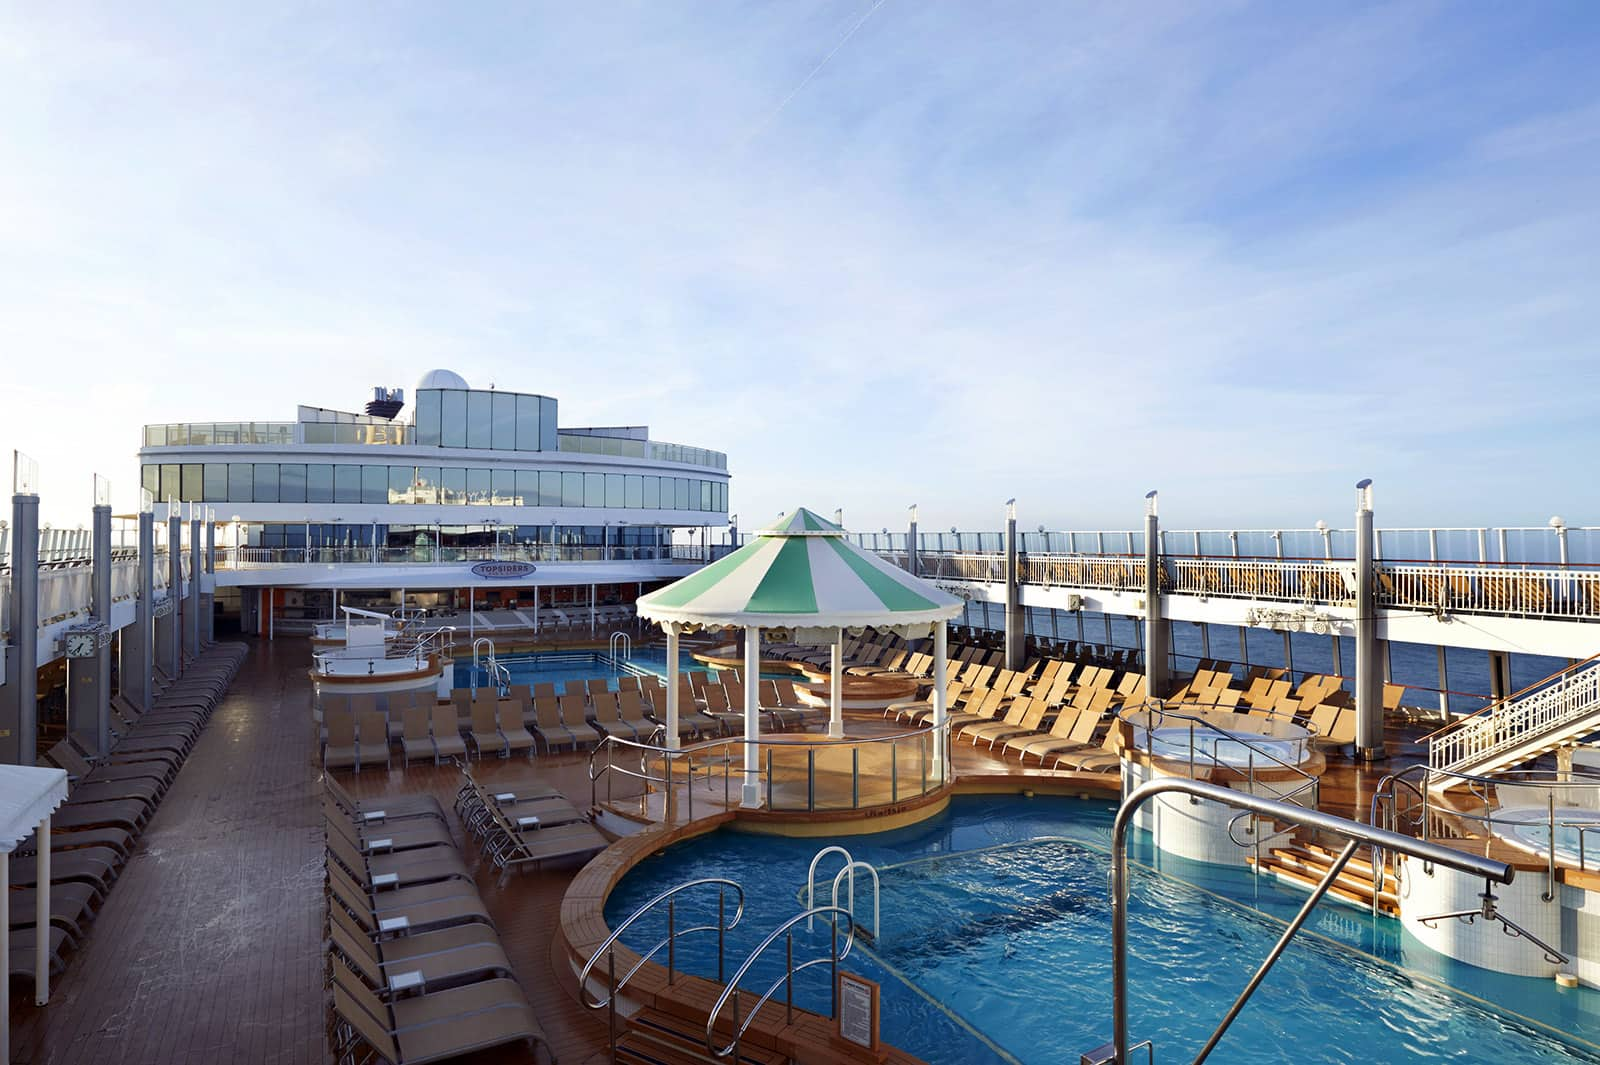 Norwegian Jewel Completes Bow-to-Stern Renovation